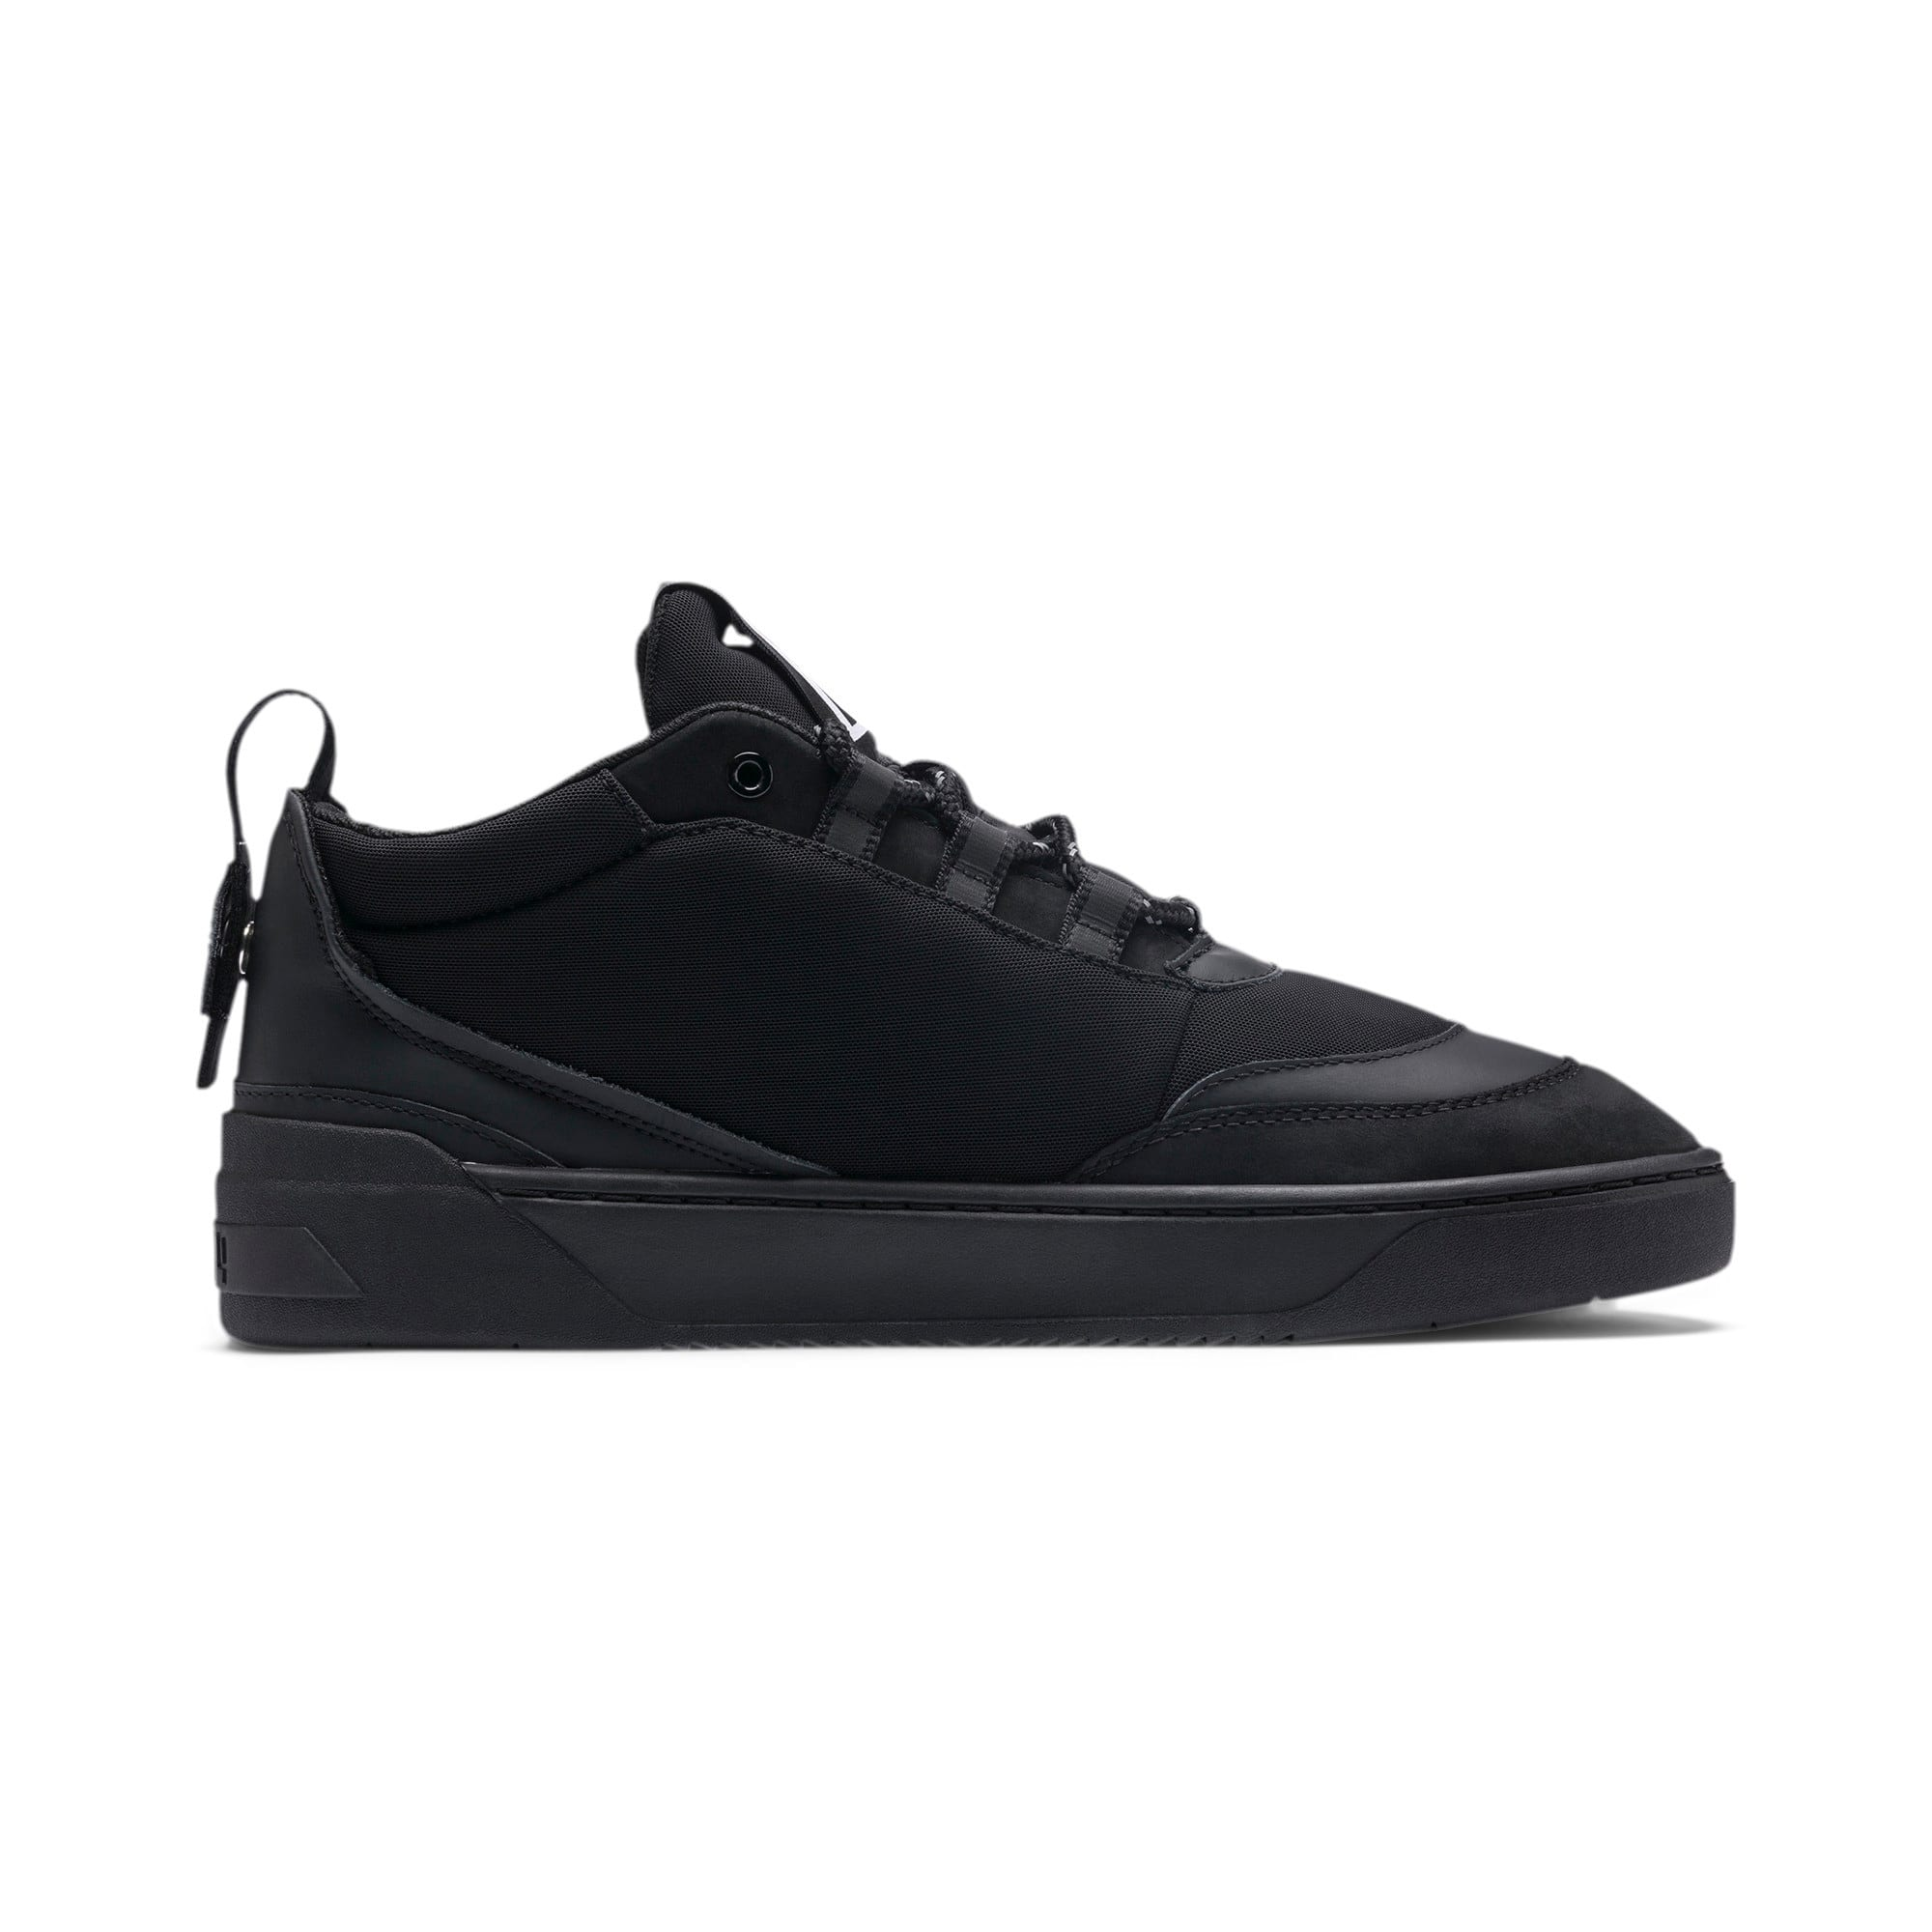 Thumbnail 5 of Cali Zero Demi Triple Black Trainers, Puma Black-Puma Black, medium